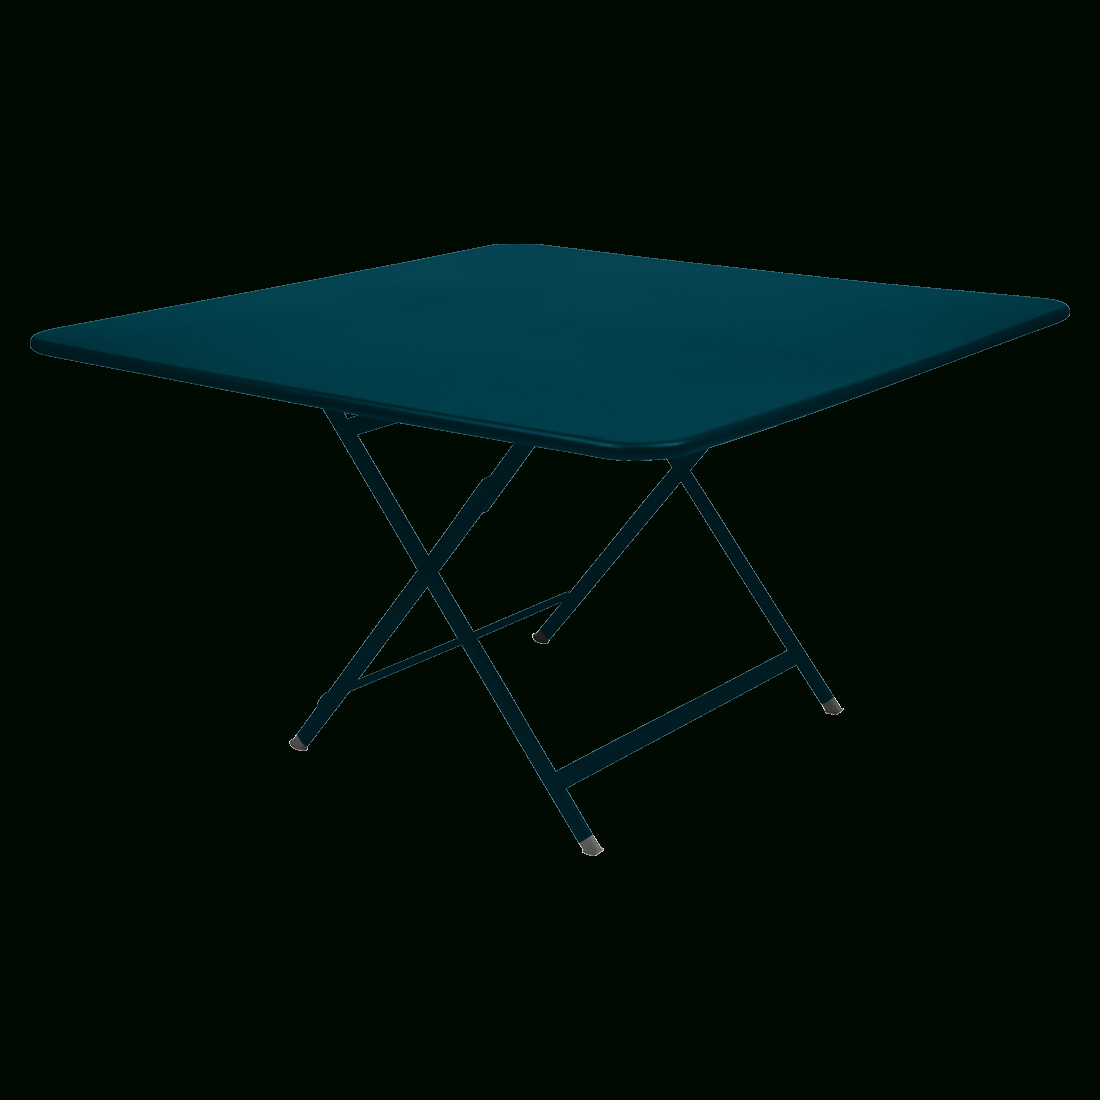 Caractère Square Table, Garden Table For 8, Outdoor Furniture encequiconcerne Table De Jardin Carrée 8 Personnes